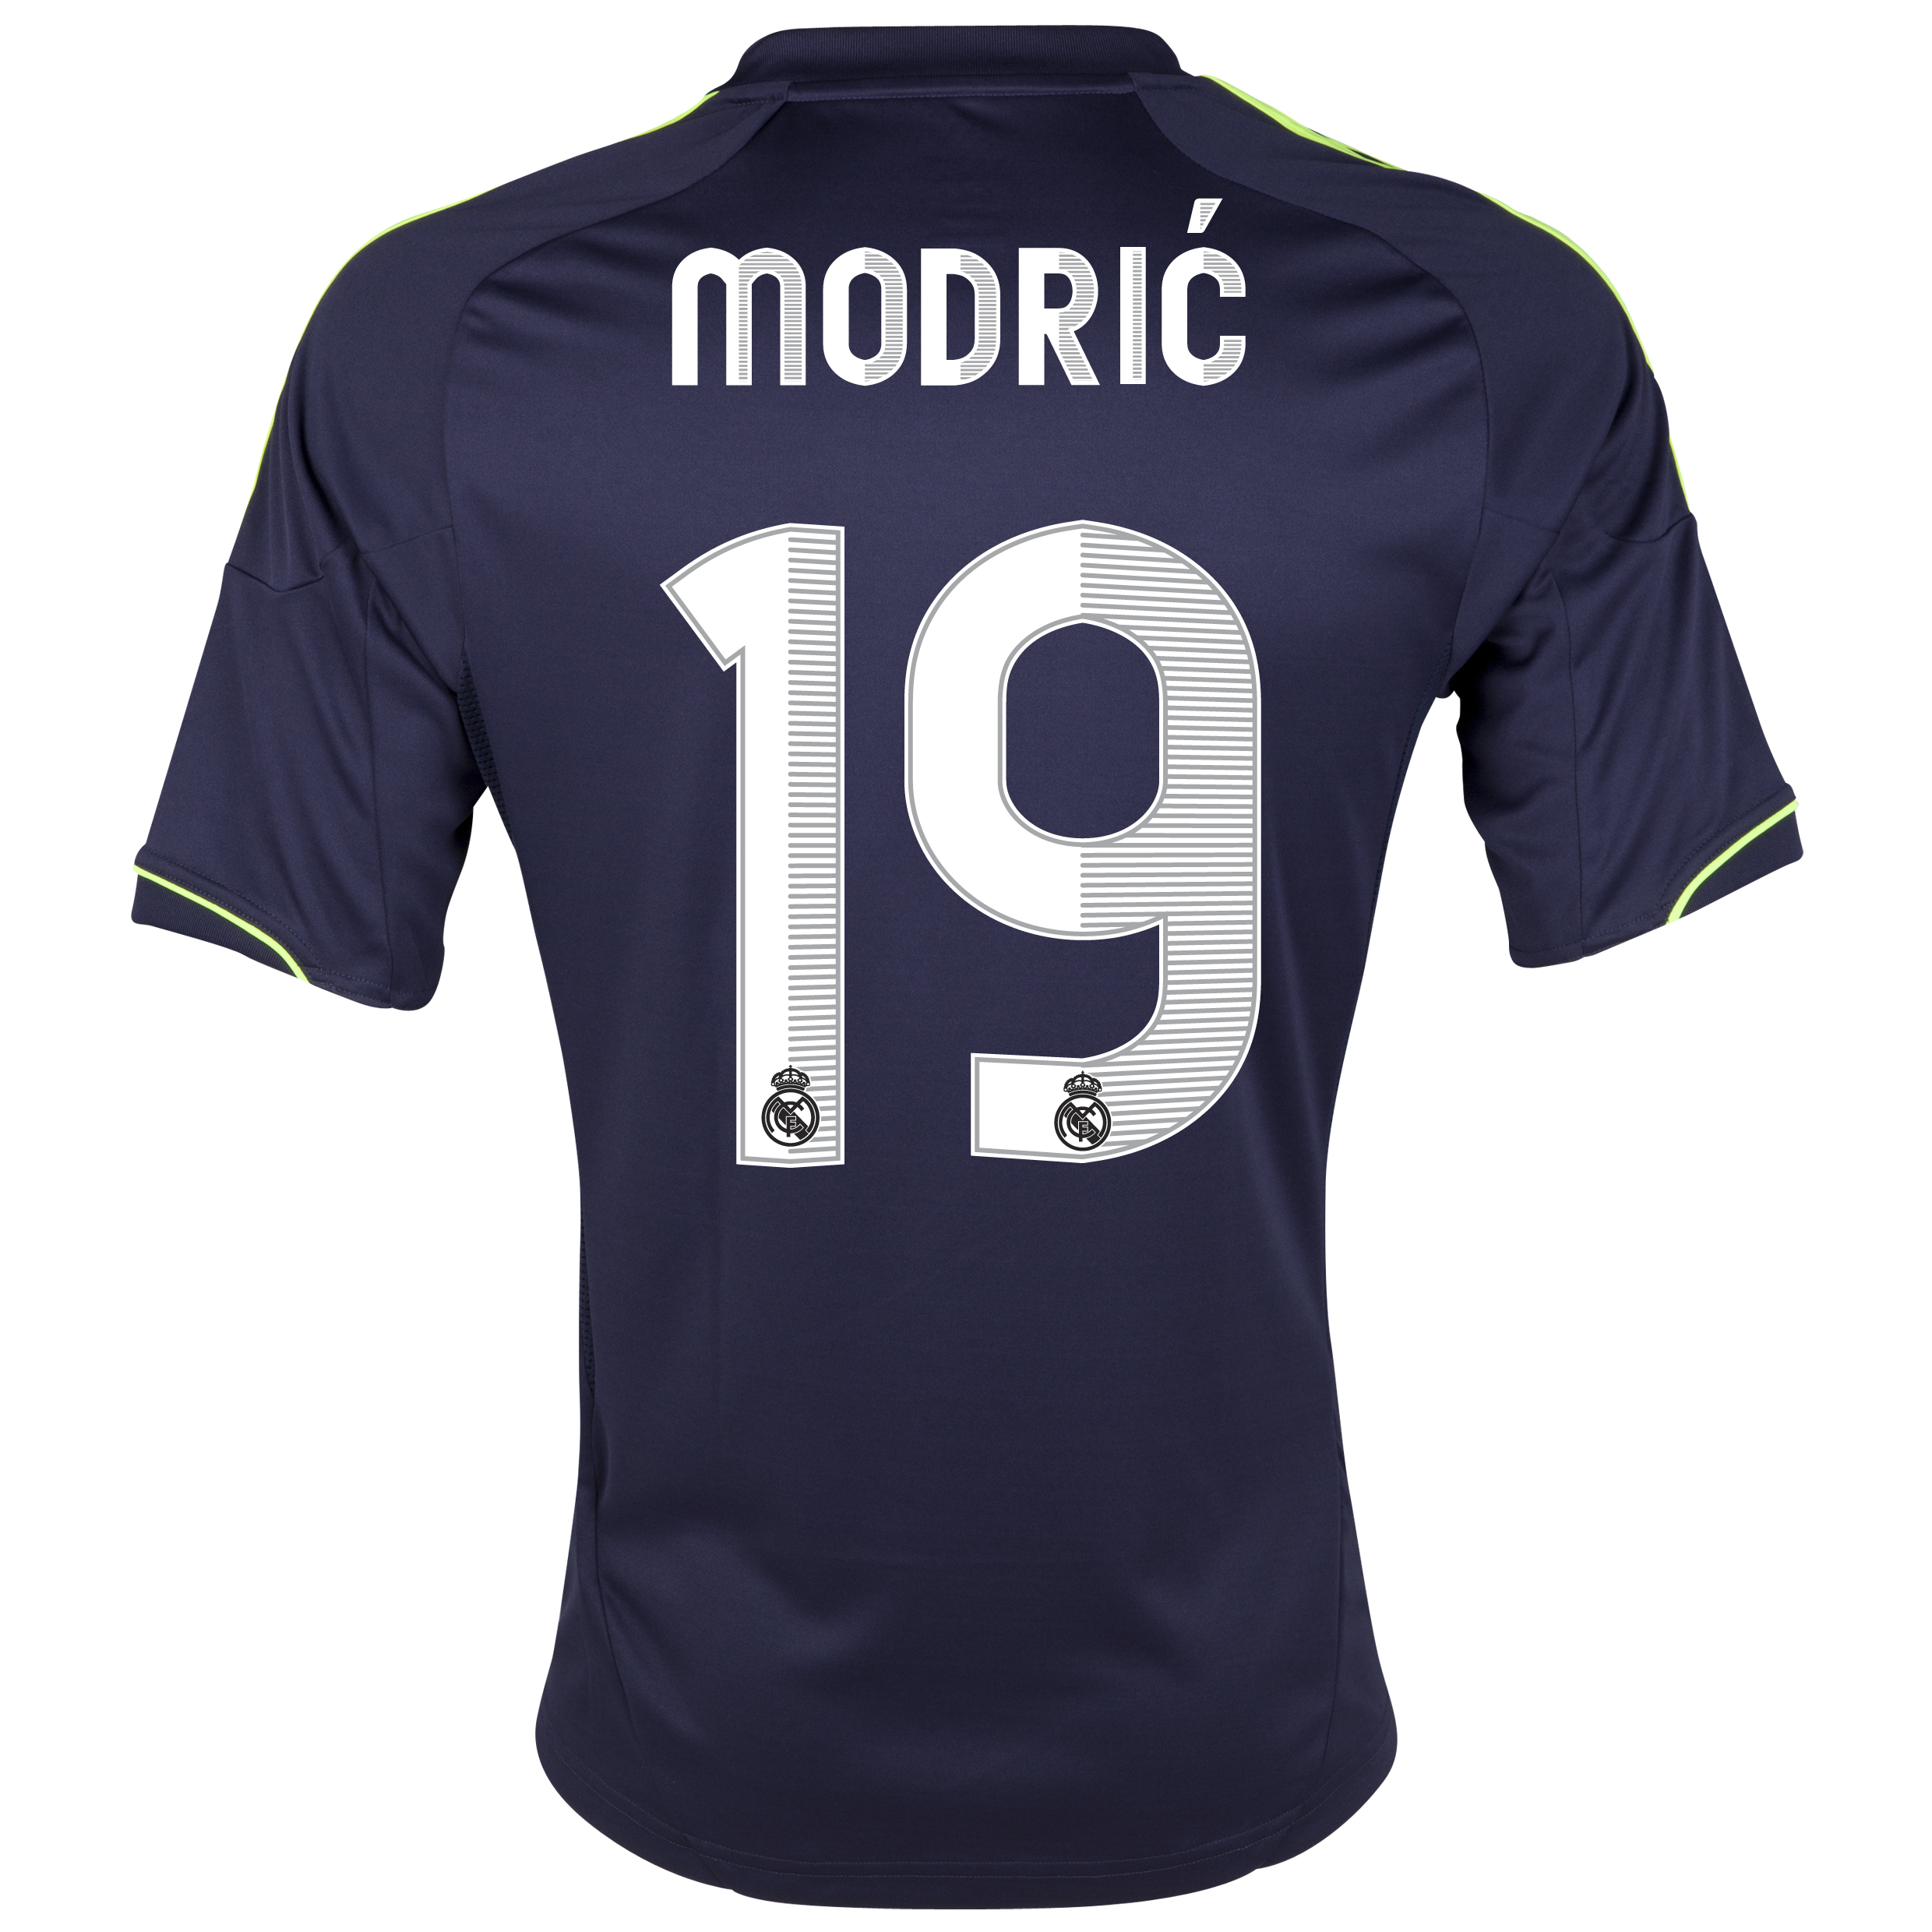 Real Madrid Away Shirt 2012/13 with Modric 19 printing